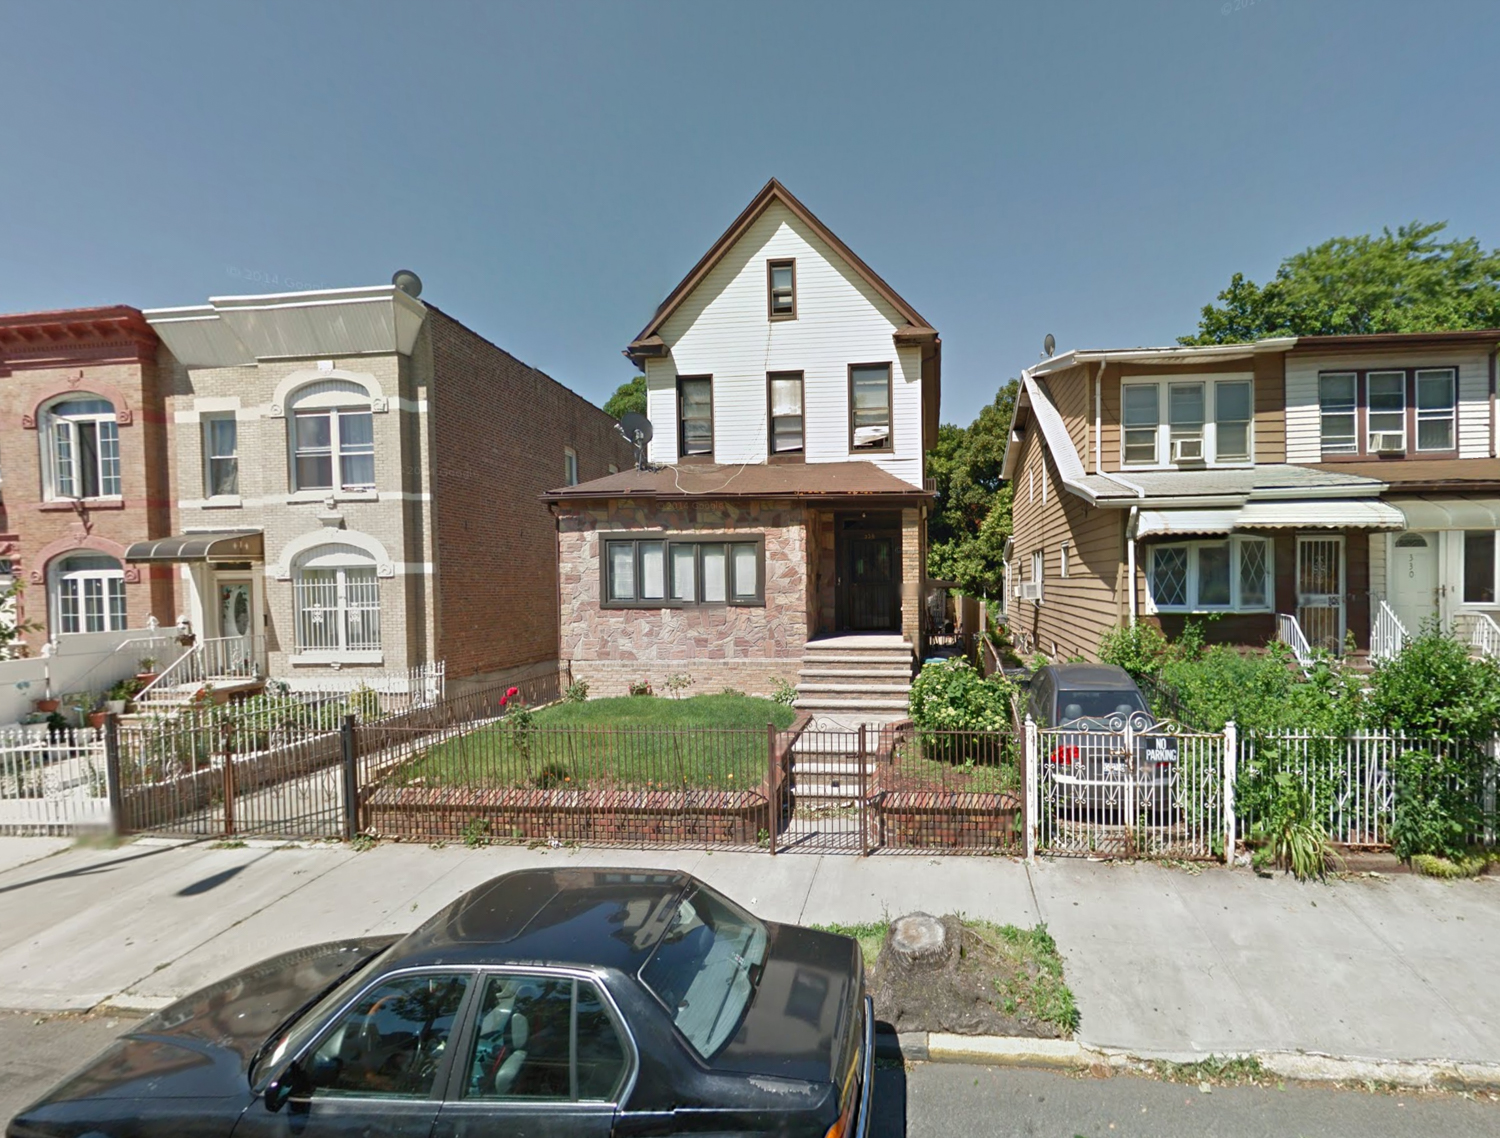 332 East 28th Street, via Google Maps